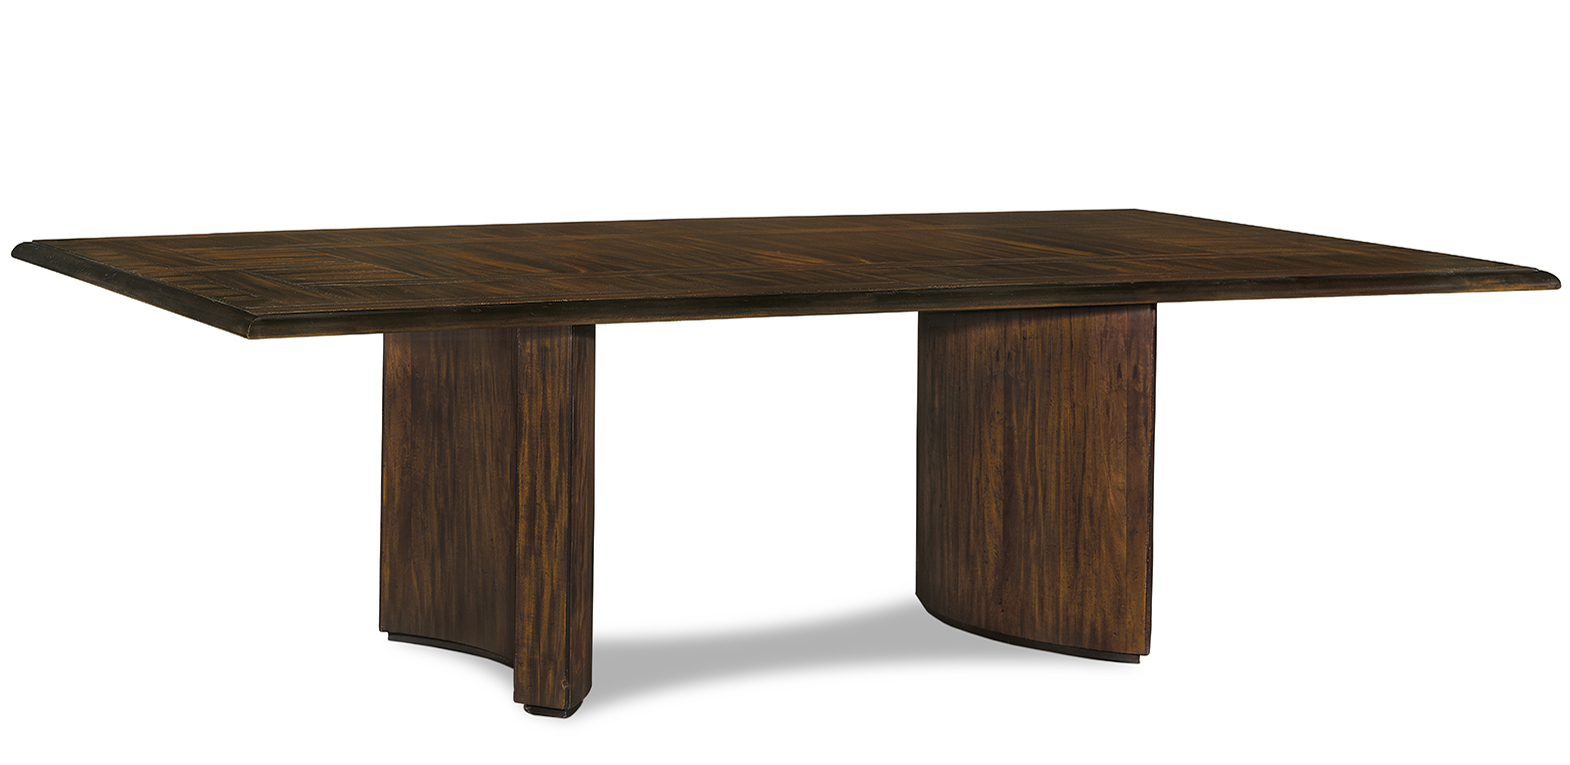 ALCALA DINING TABLE 310 X 140